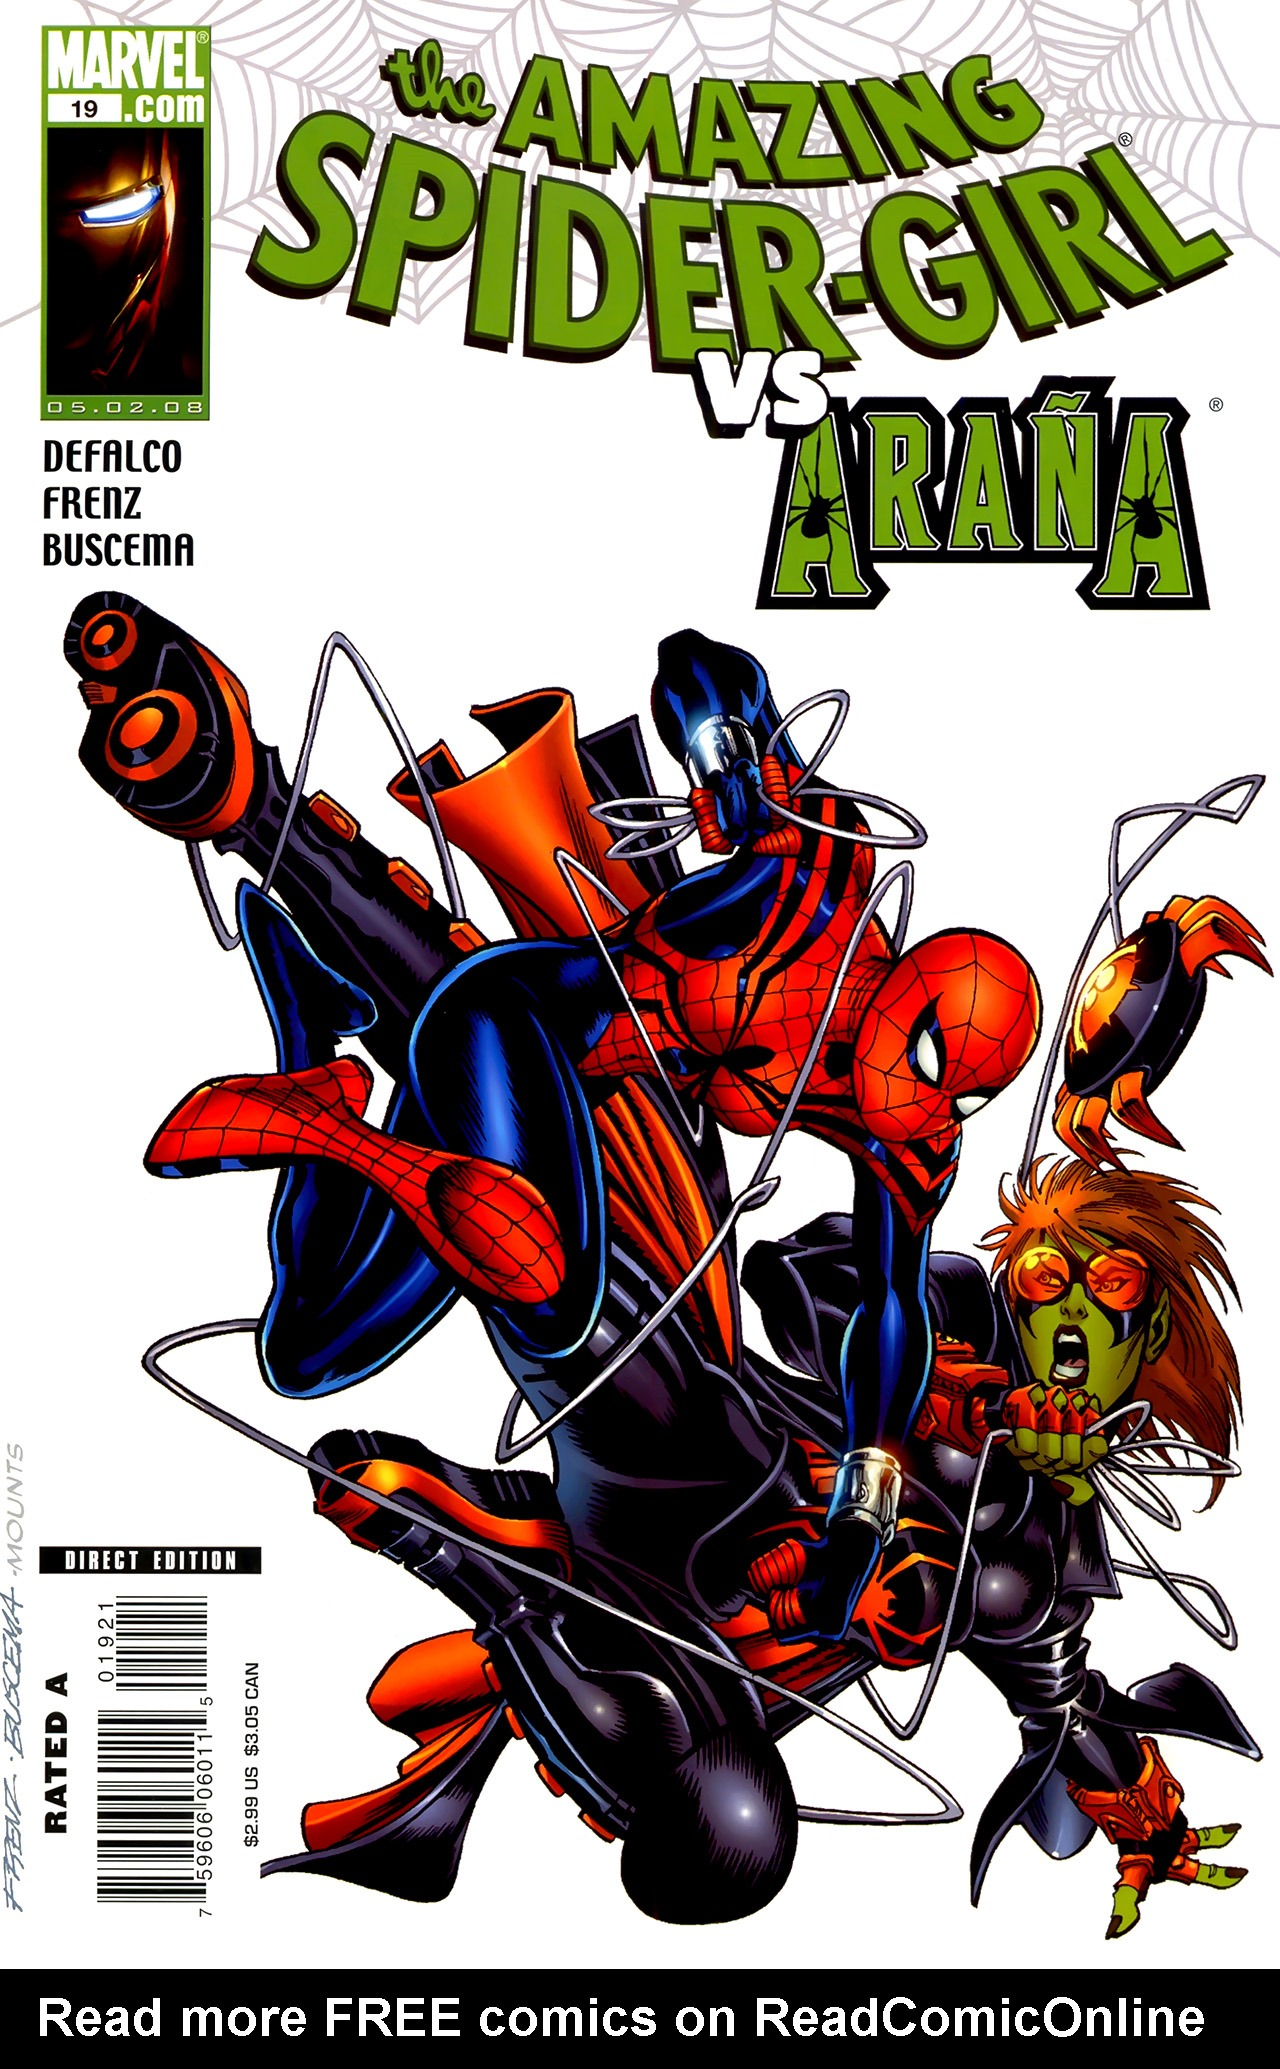 Read online Amazing Spider-Girl comic -  Issue #19 - 2